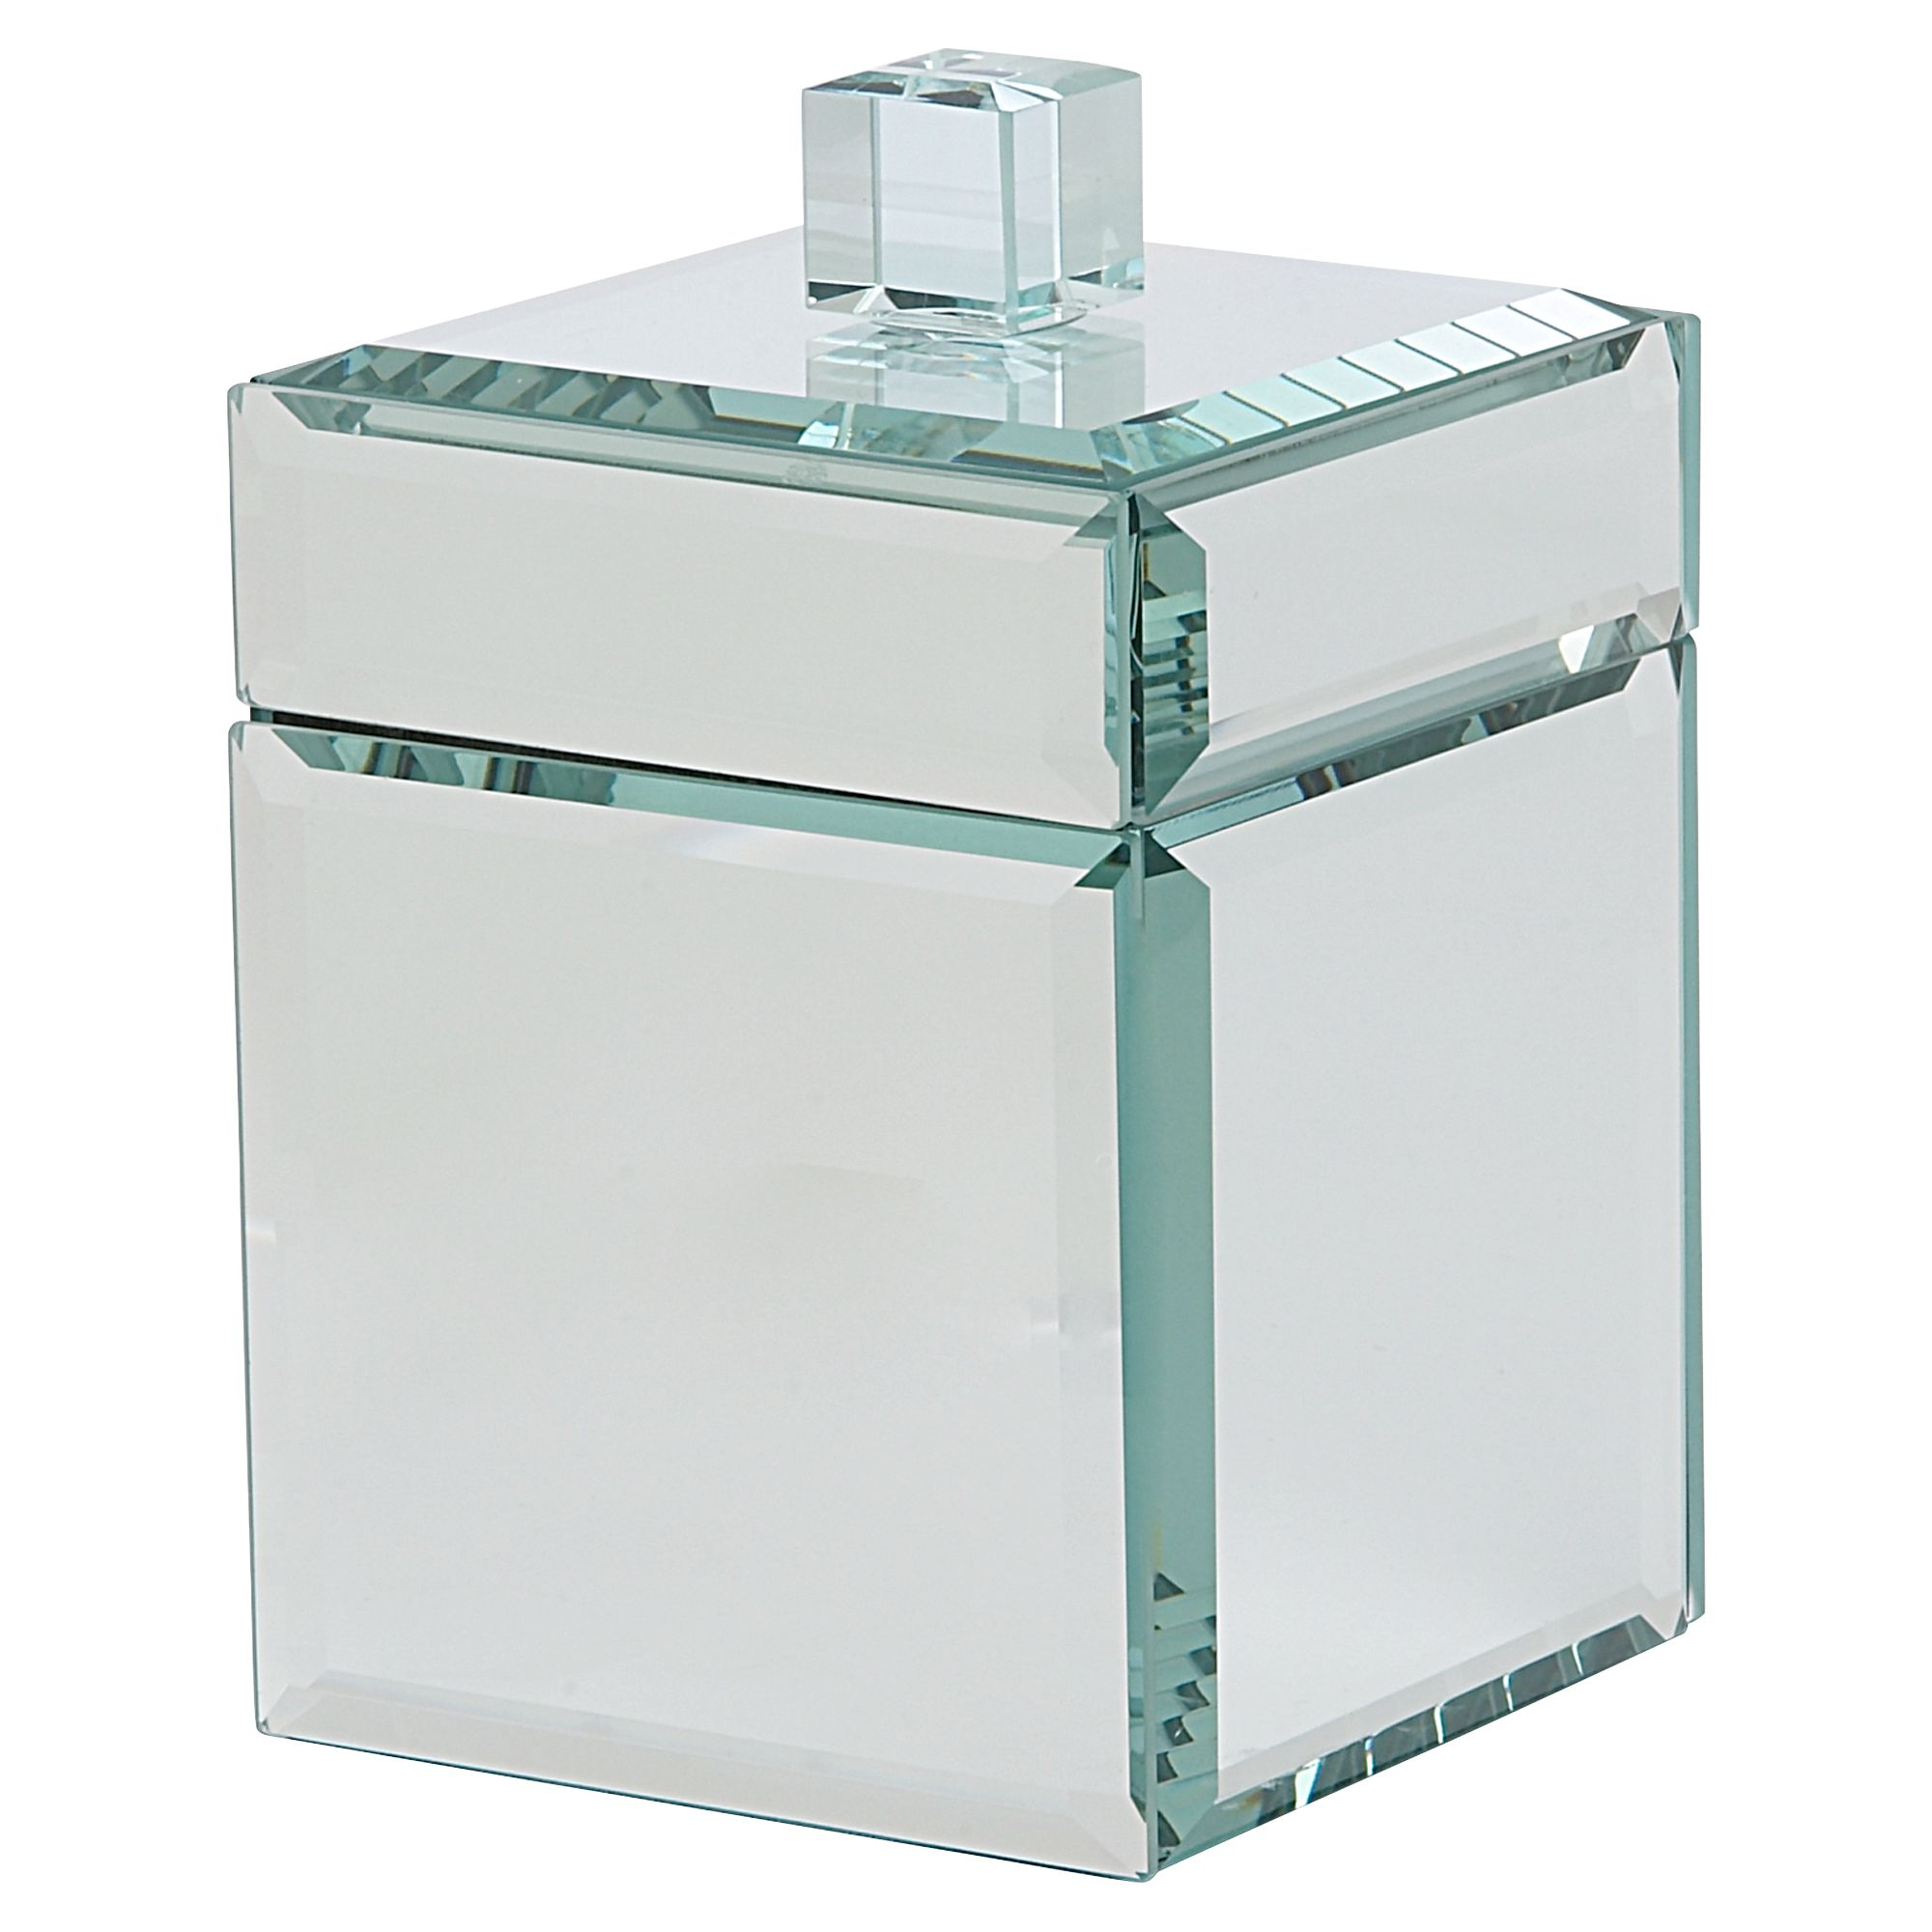 Linea mirrored cotton box review compare prices buy online for Mirrored bathroom accessories